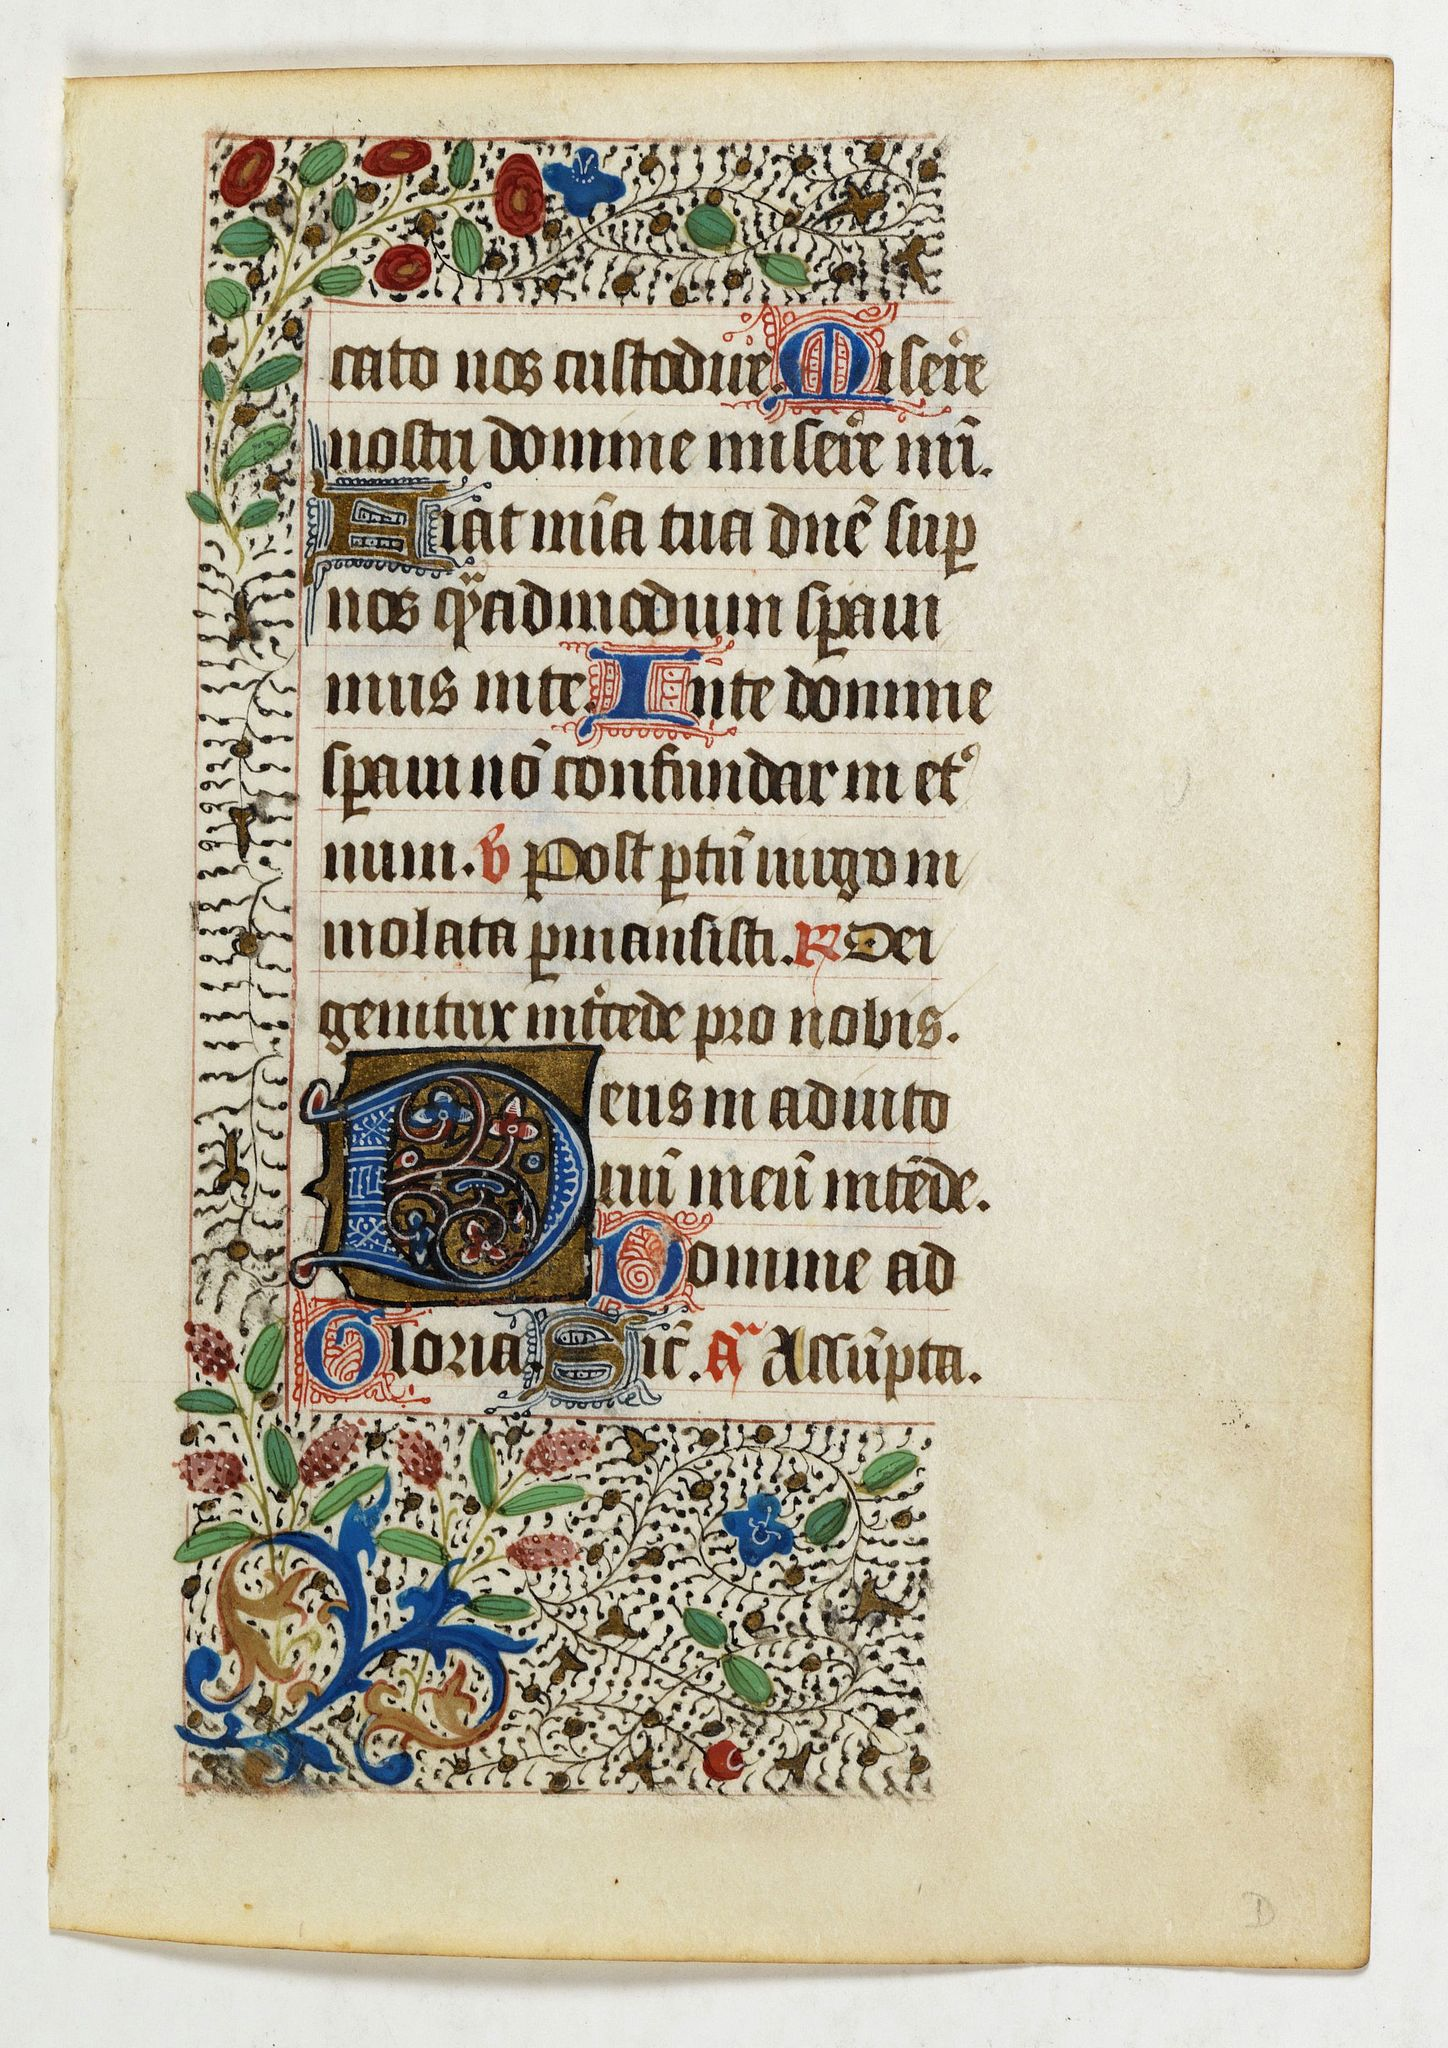 BOOK OF HOURS -  Page from a 15th. century Book of Hours.